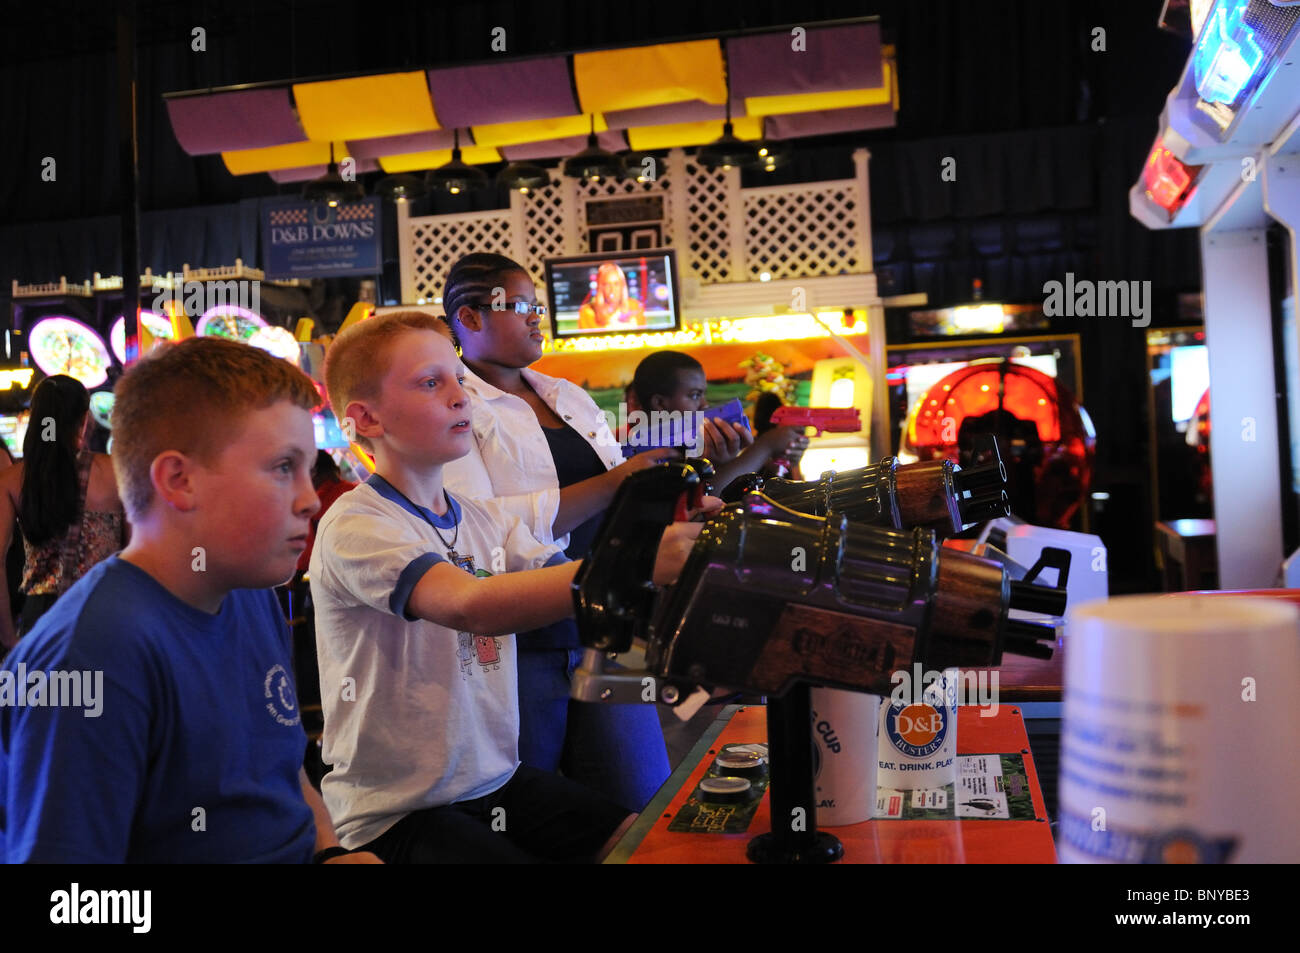 People playing video games at an arcade in midtown Manhattan. - Stock Image